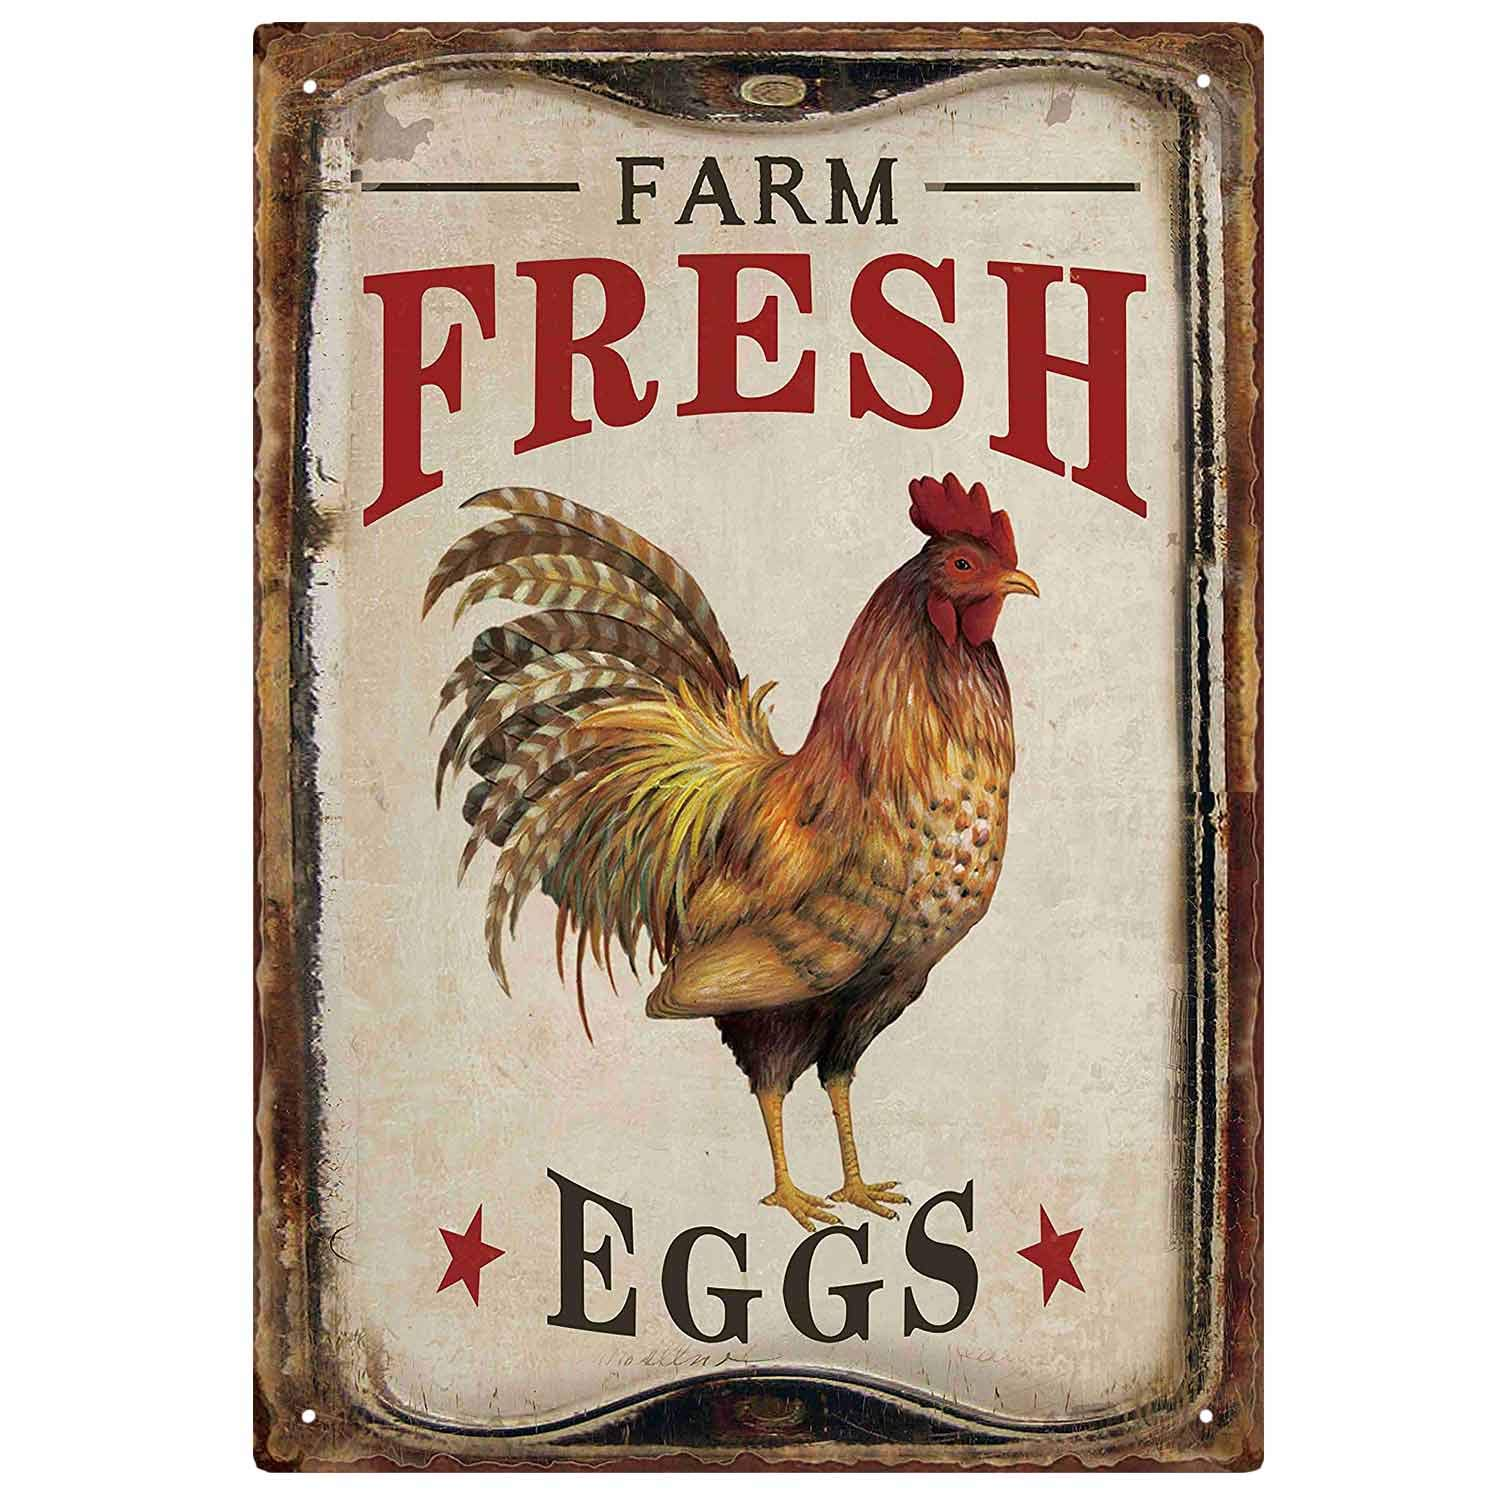 M-Mount Tin Signs Vintage Designs Farm Fresh Organic Eggs Retro Bar Sign Country Home Decor Wall Decor Indoors Metal Coffee Art Poster 8x12Inch